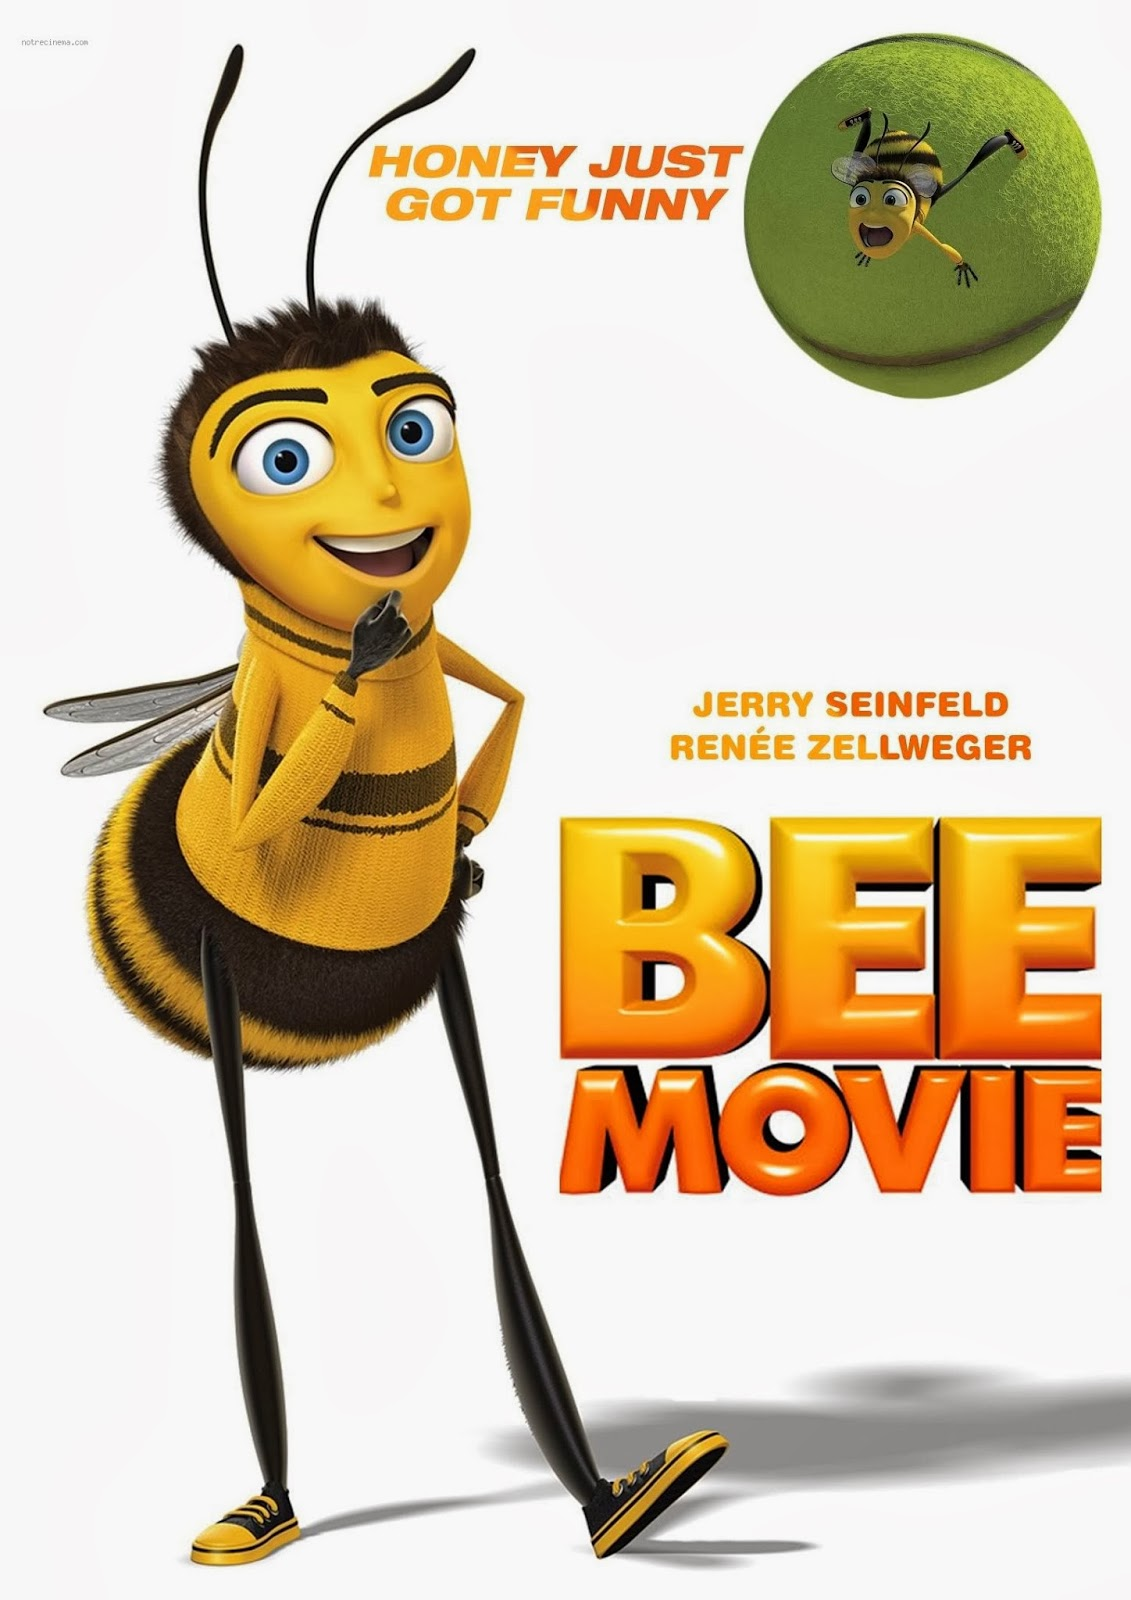 Bee Movie Poster Images & Pictures - Becuo Ed Westwick